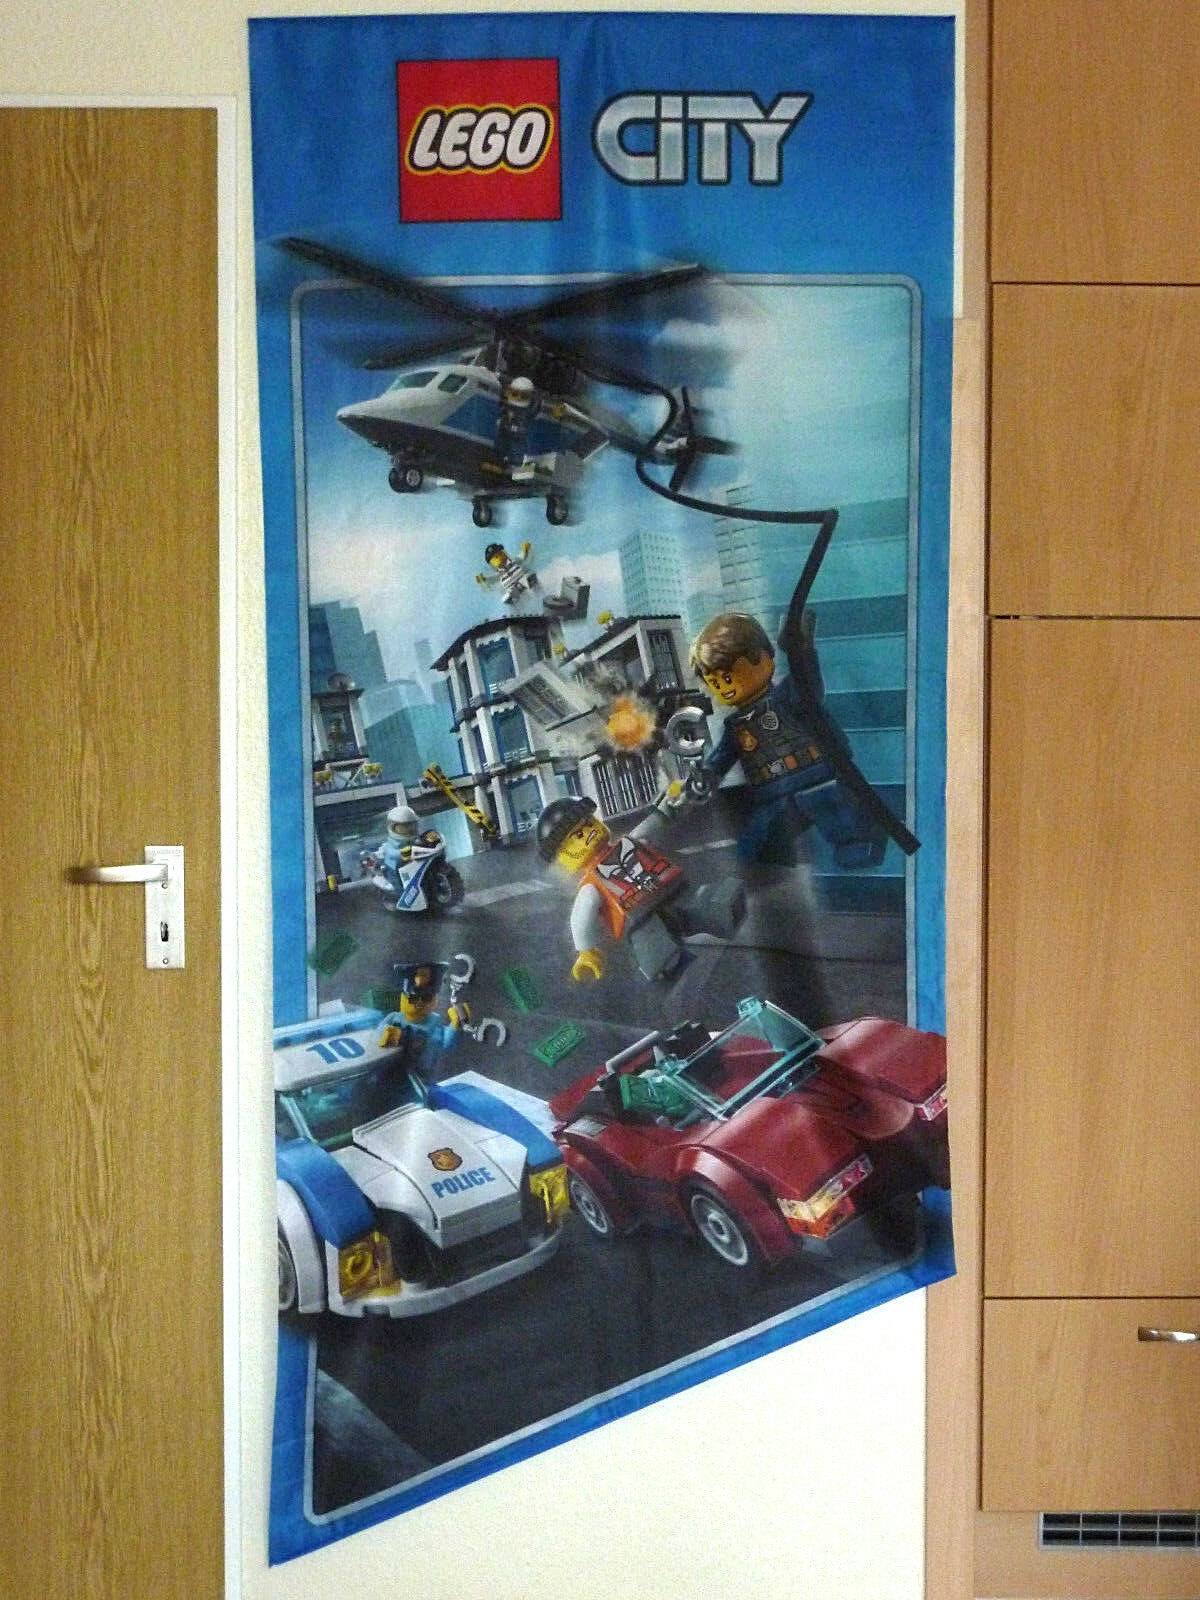 LEGO CITY POLIZEI JAGD POLICE WERBE BANNER PLAKAT FAHNE ADVERTISING LABEL SIGN